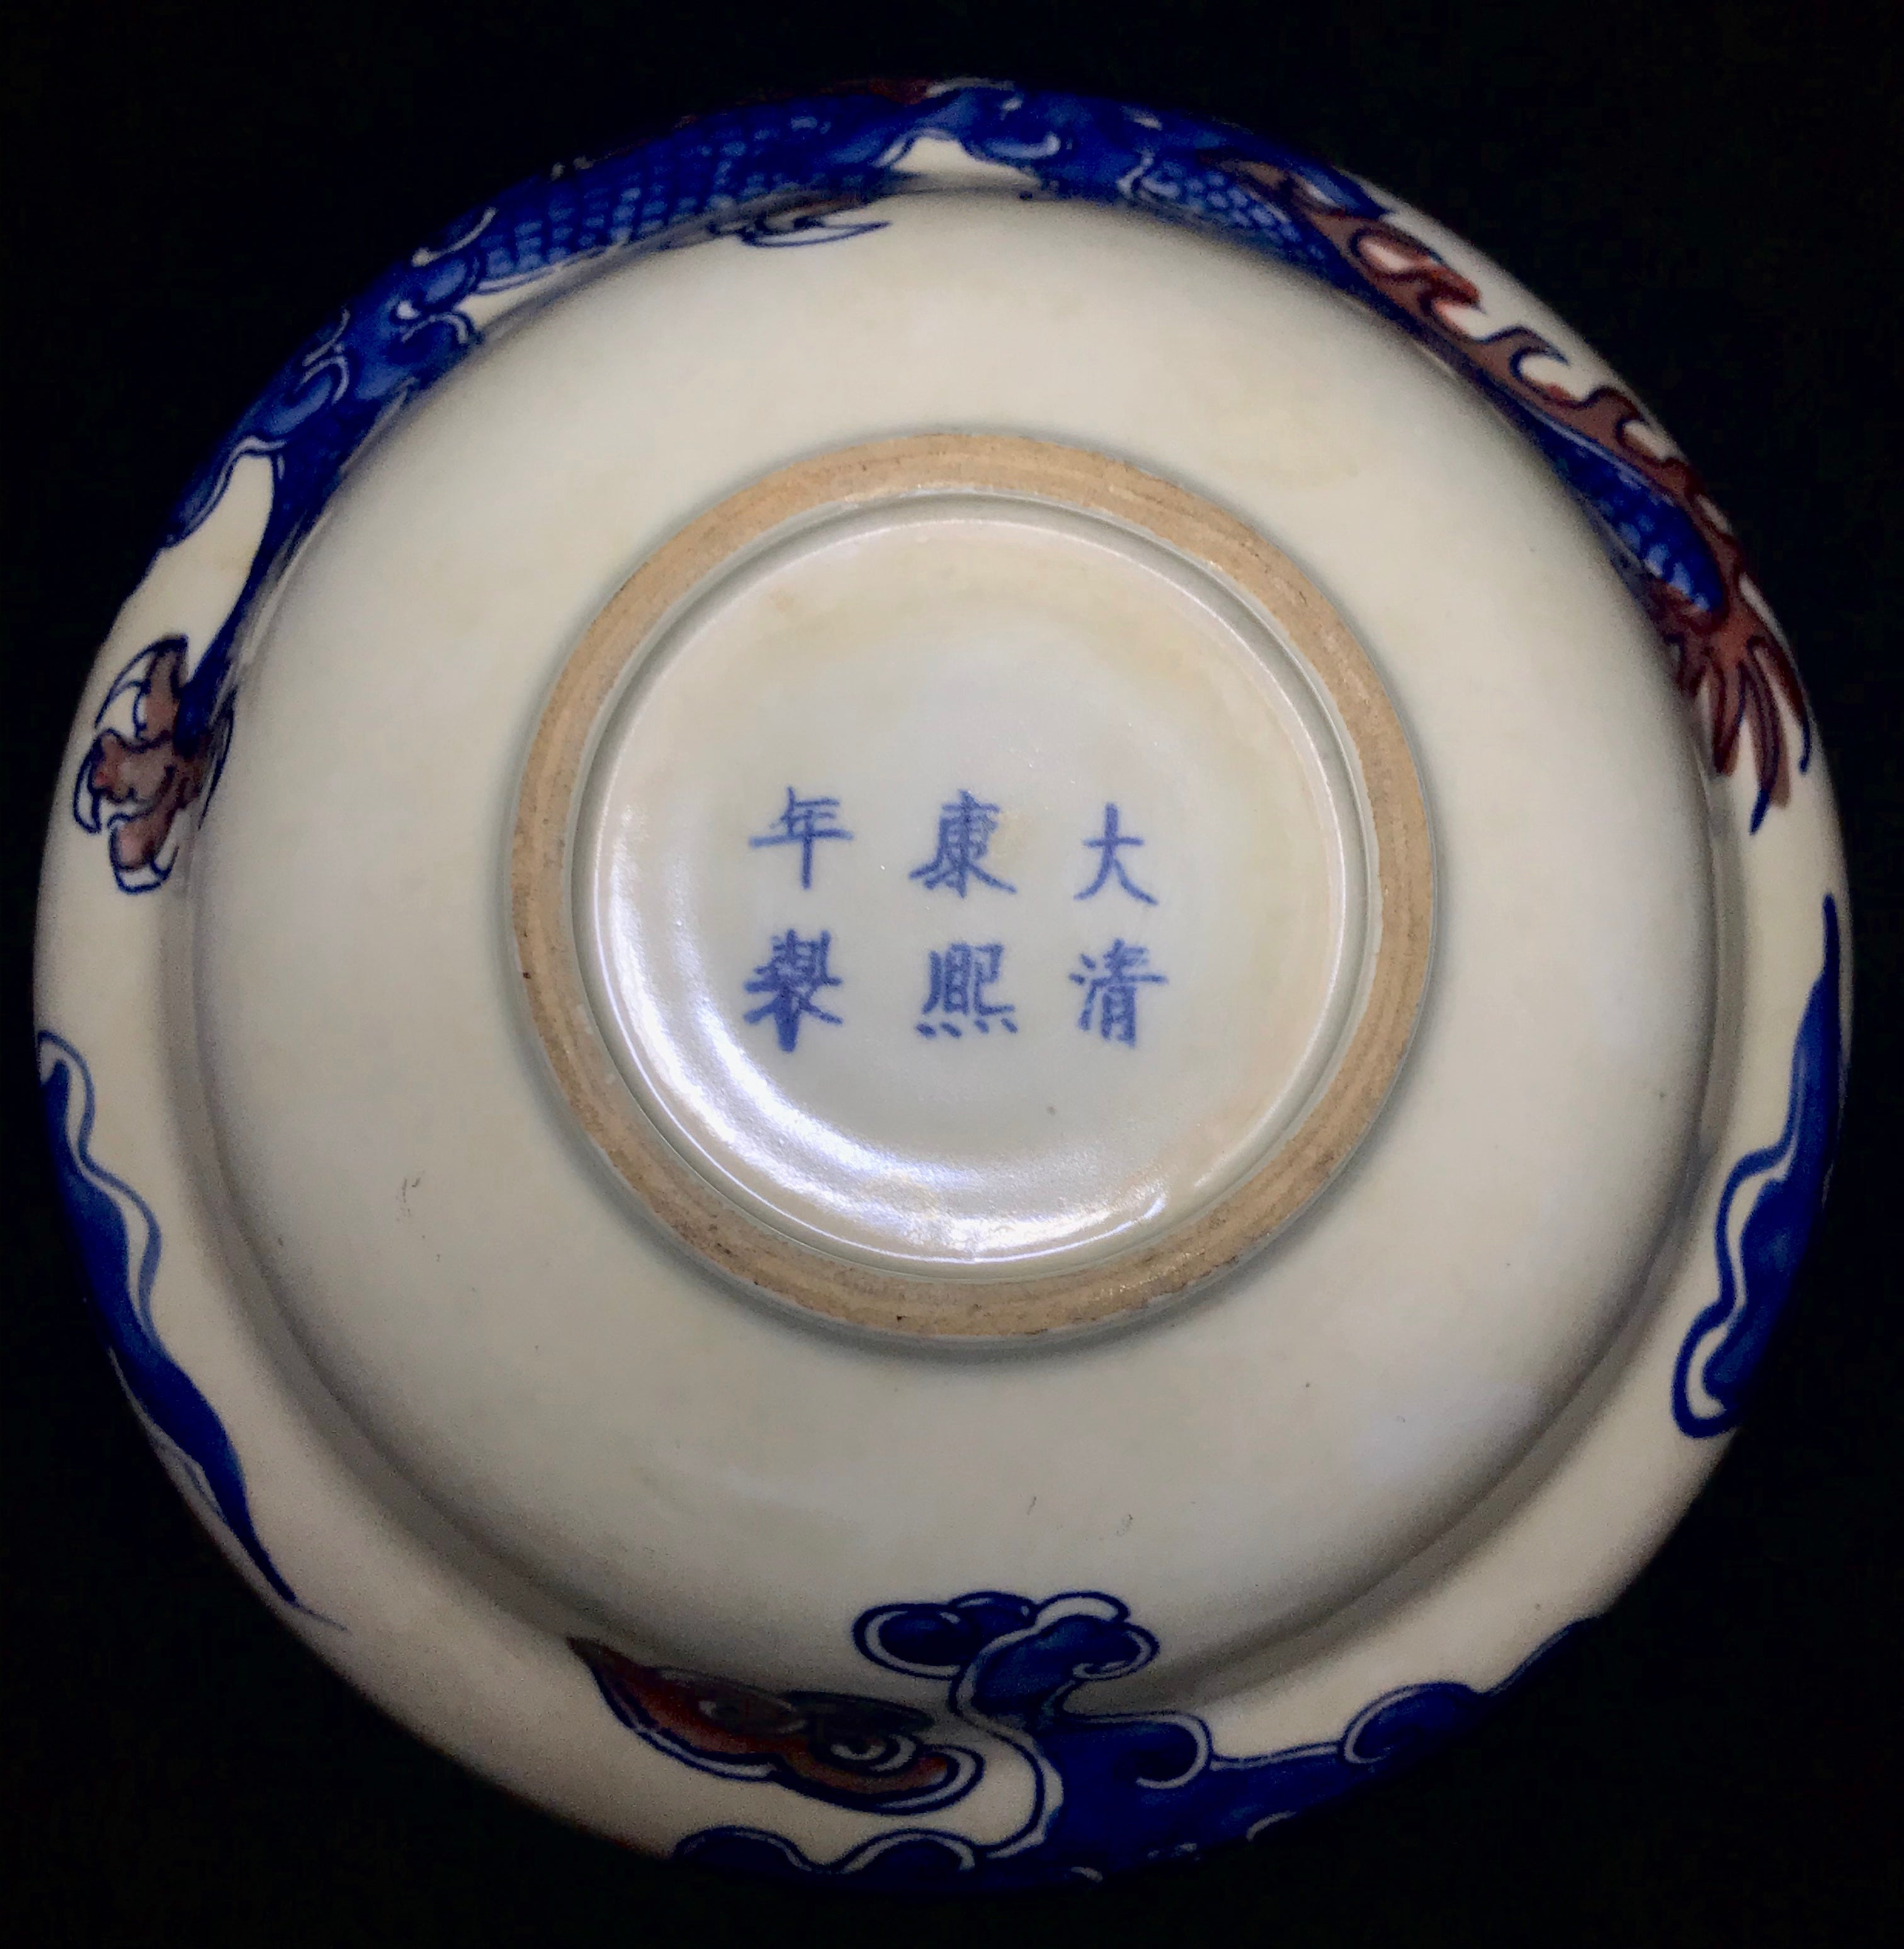 Qing Dynasty Bowl with 6 Character Kangxi Seal - 10 Dynasties